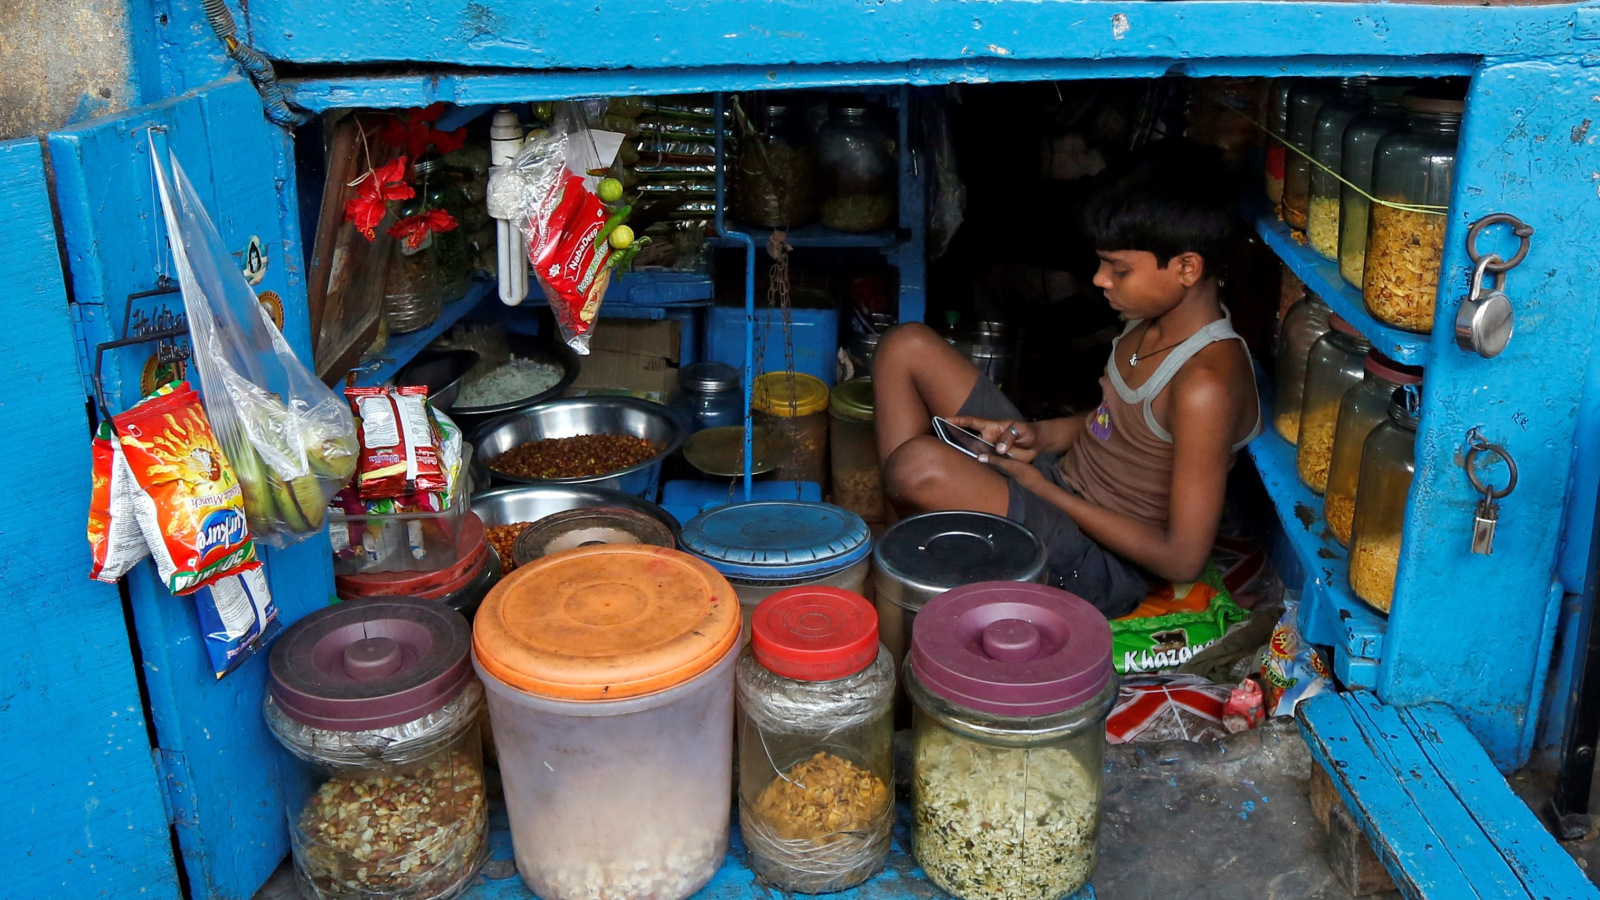 A boy uses a mobile phone as he sits inside his father's snacks shop along a road in Kolkata, India, February 22, 2016. REUTERS/Rupak De Chowdhuri/File Photo - RTX2EFD0